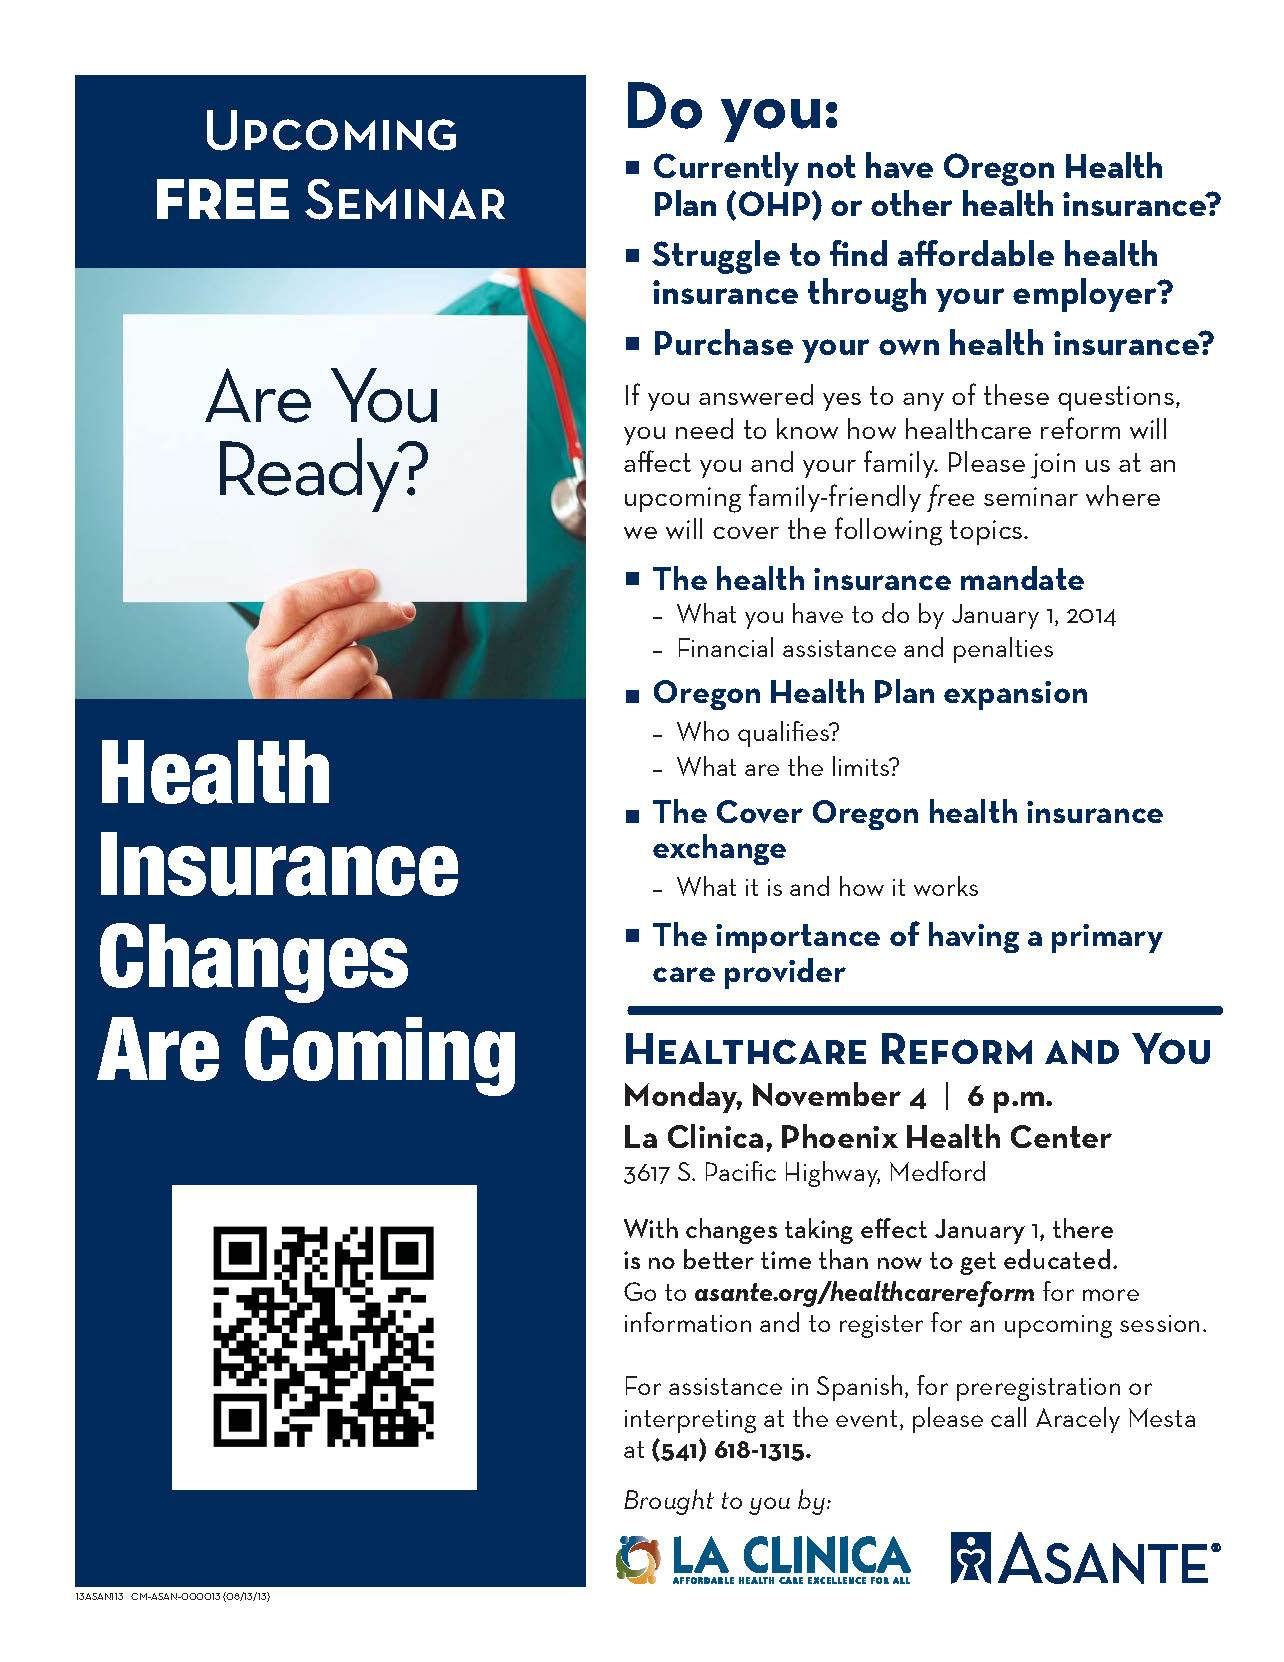 La Clinica Healthcare Reform Seminar